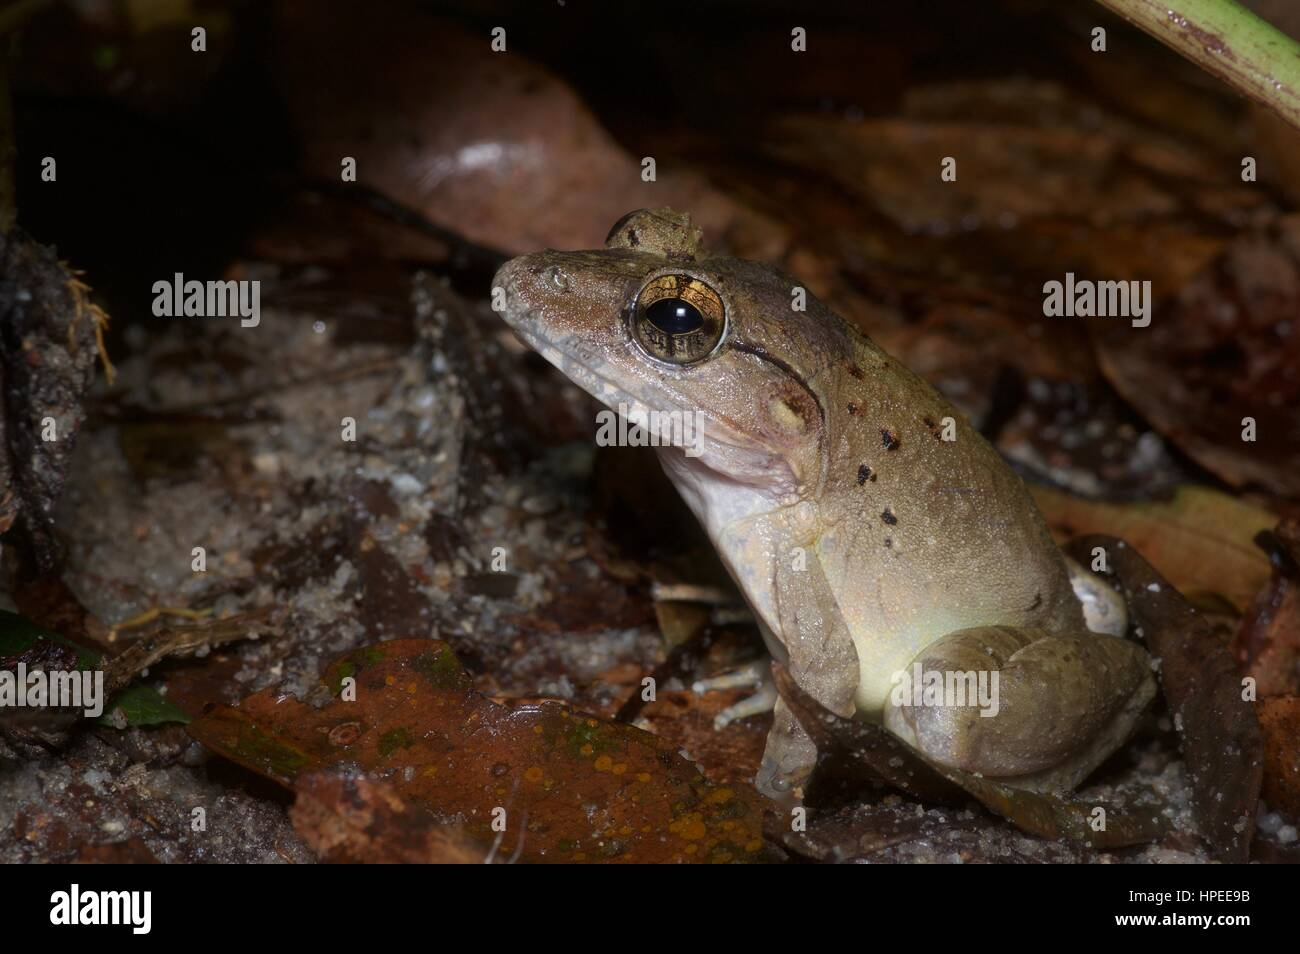 A Giant River Frog (Limnonectes blythii) in the rainforest at night in Semenyih, Selangor, Malaysia - Stock Image